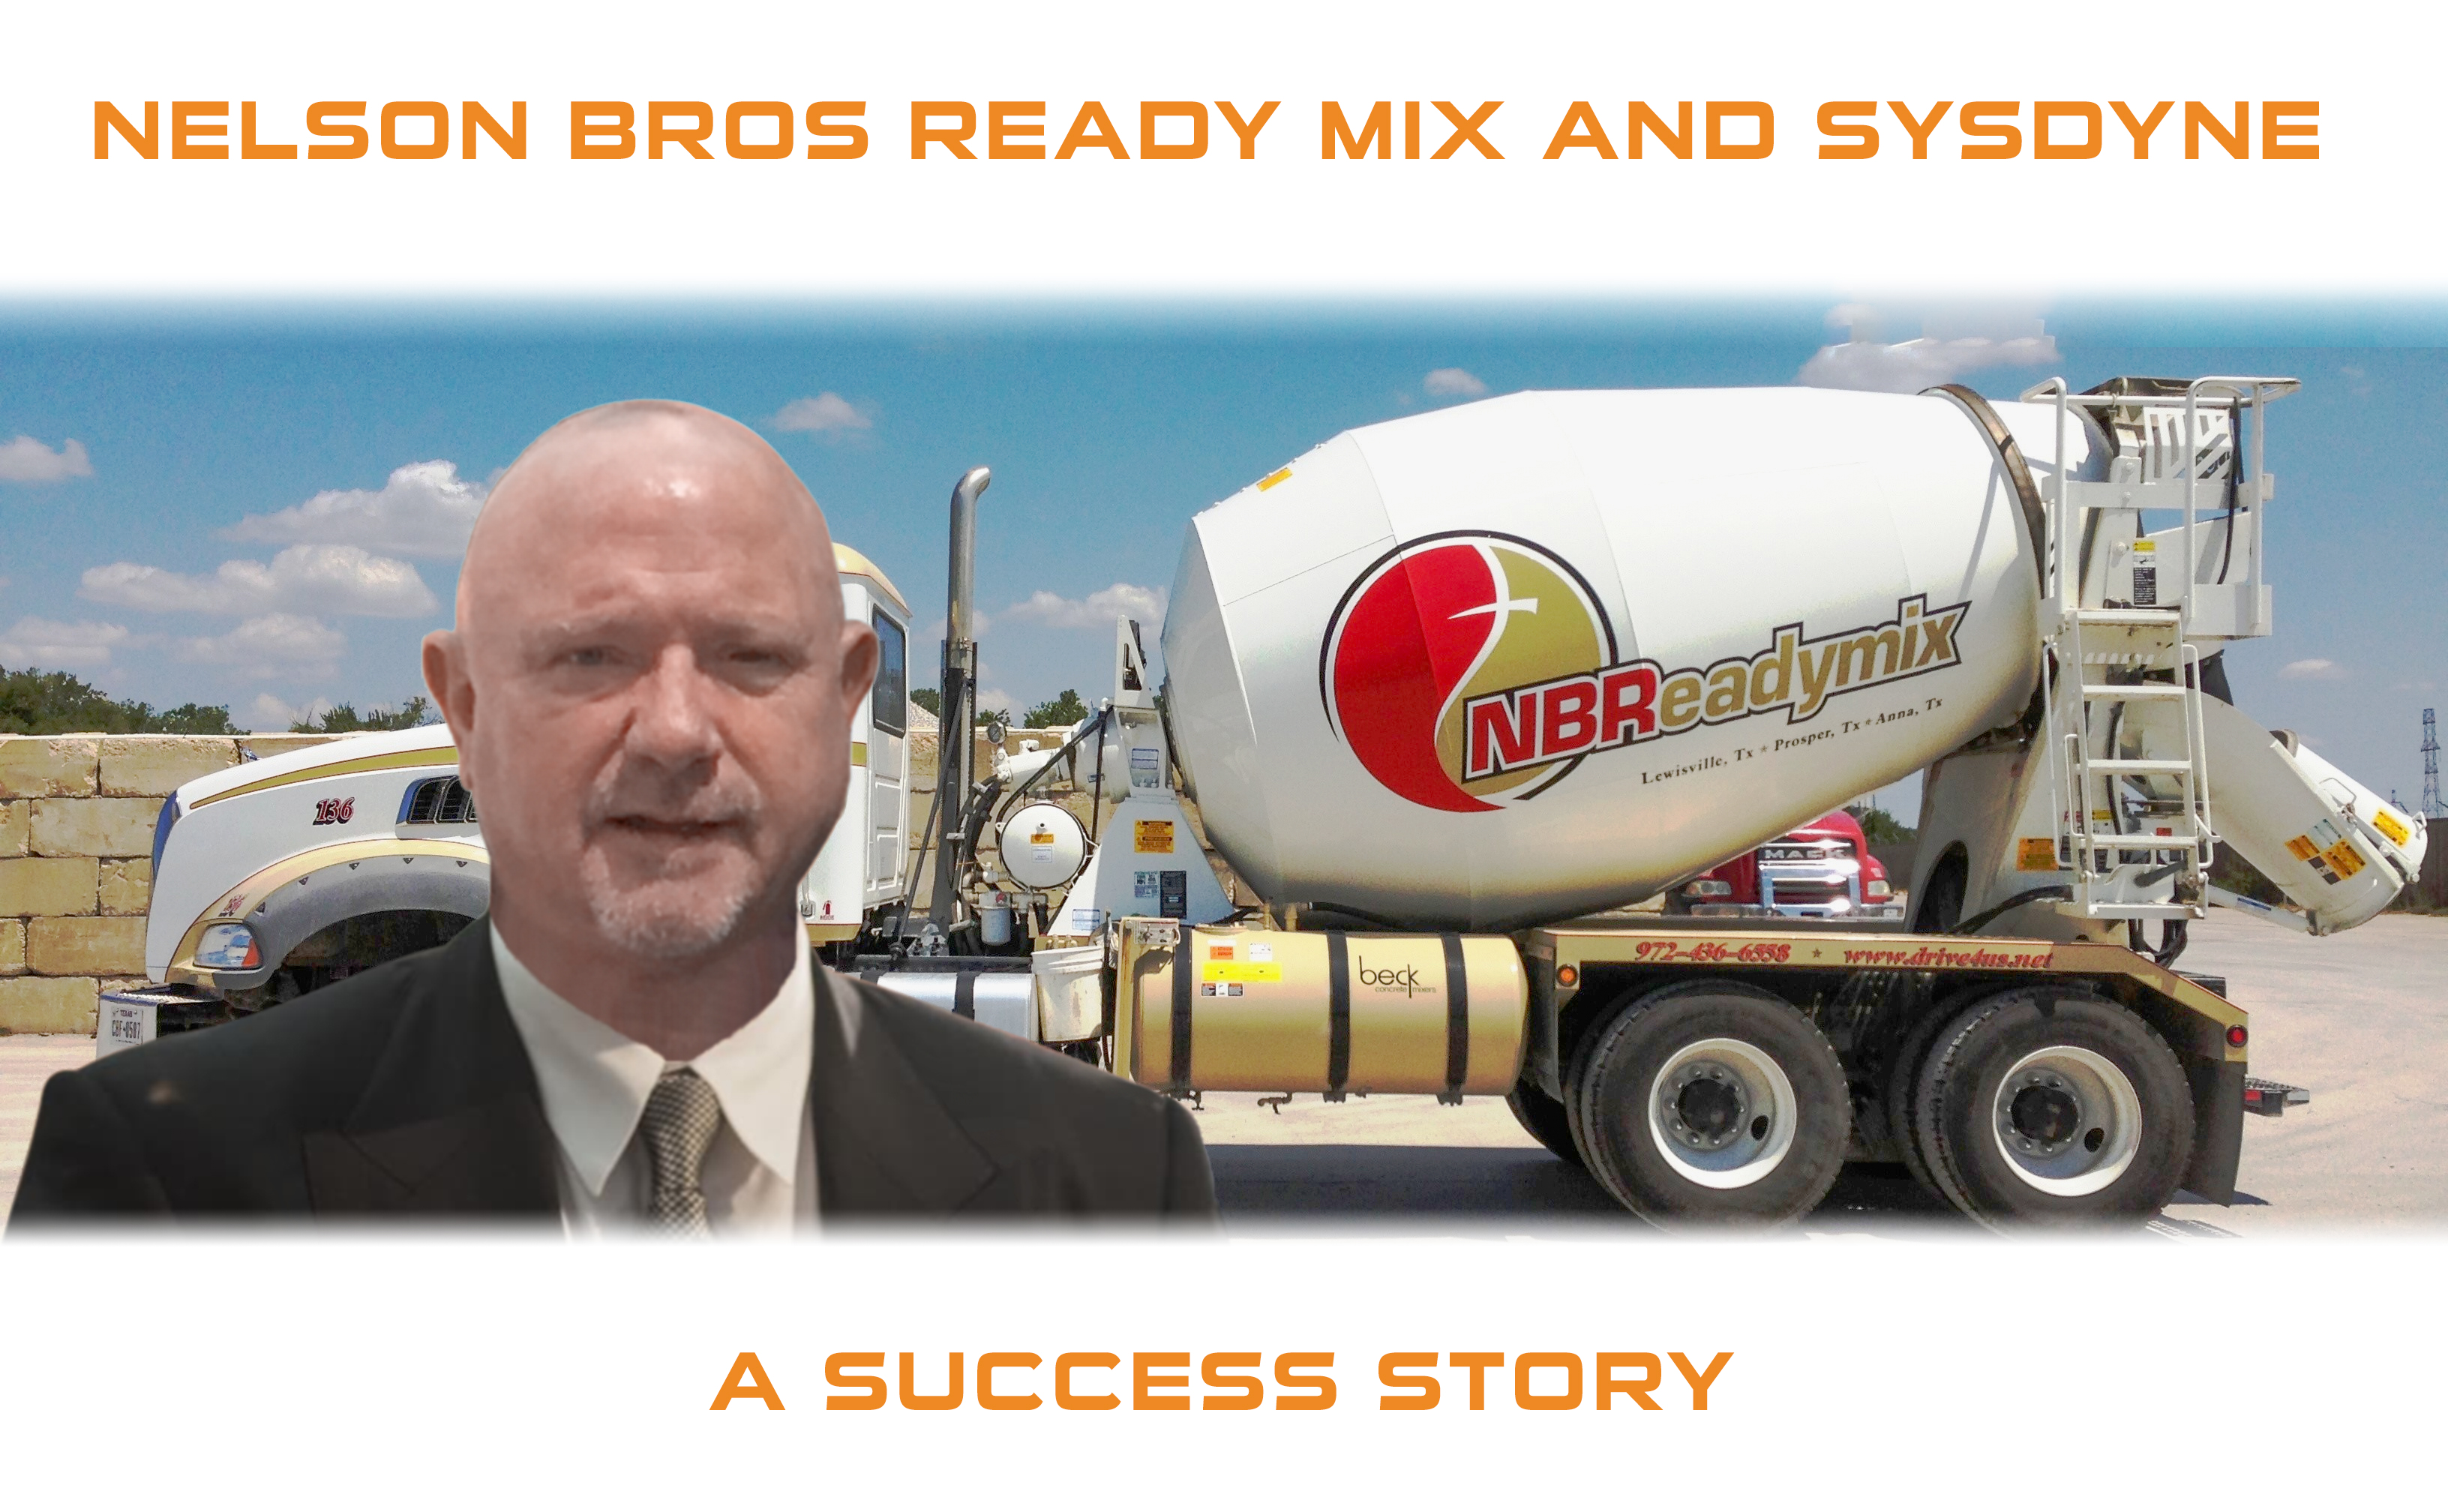 Nelson Bros Ready Mix